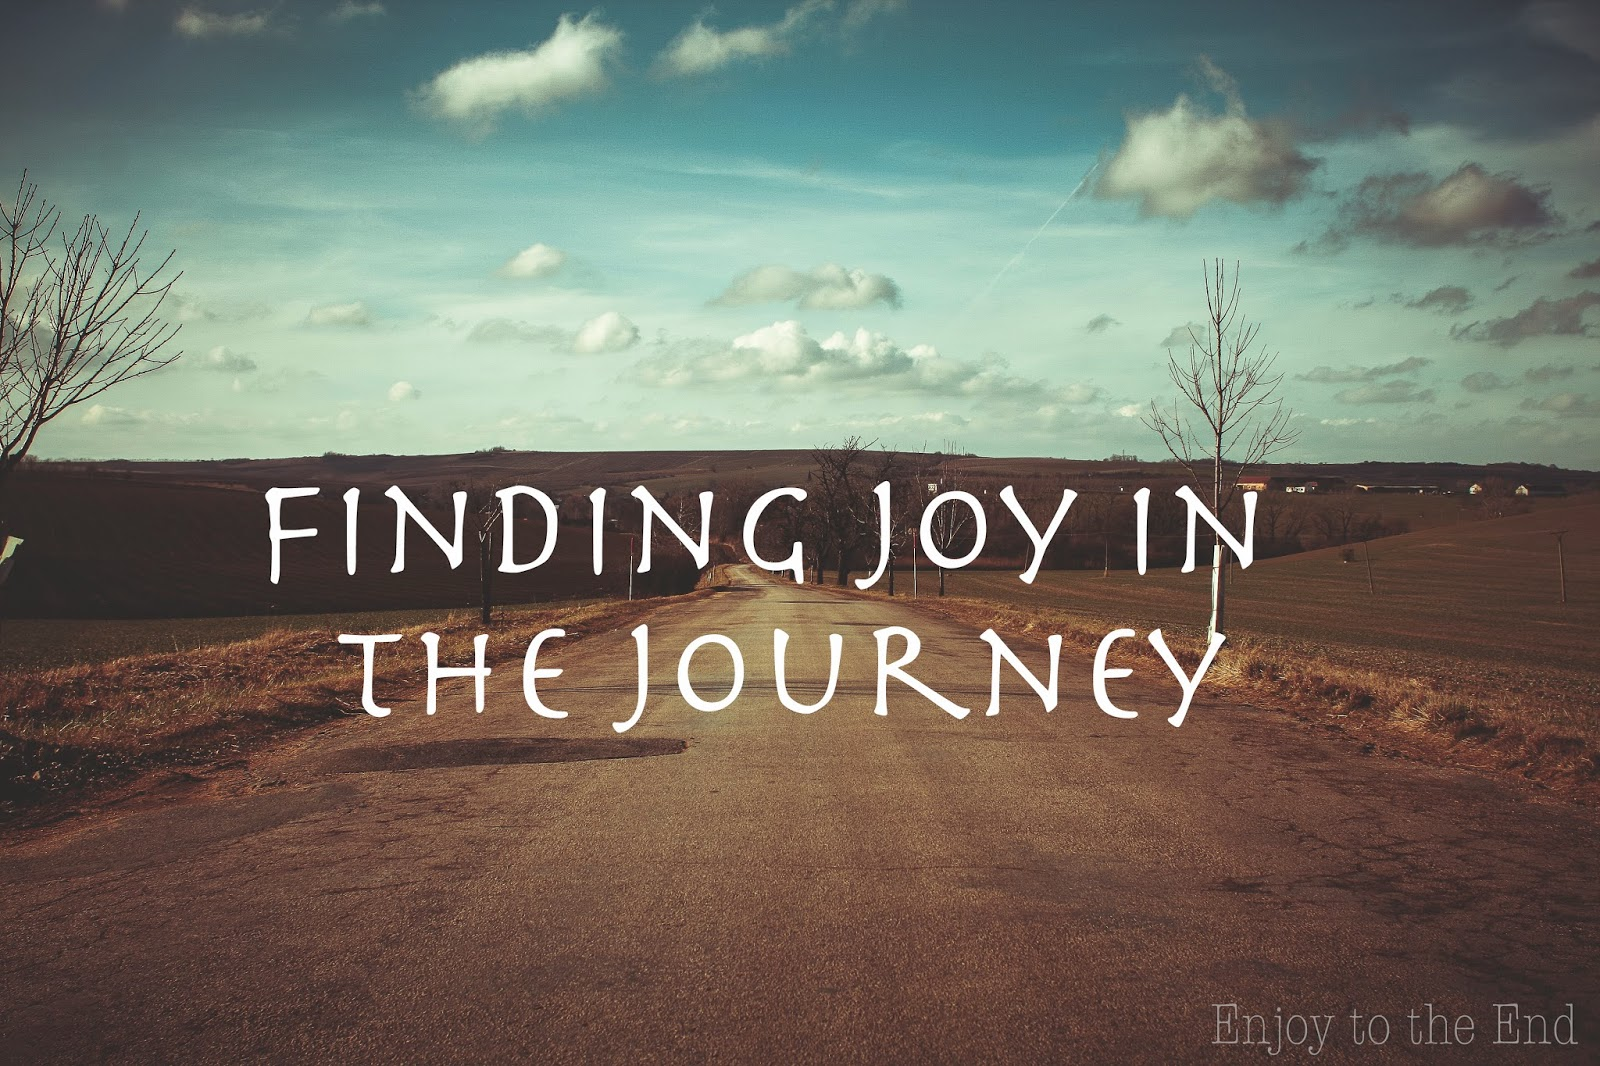 Finding Joy in the Journey - Picture of a road